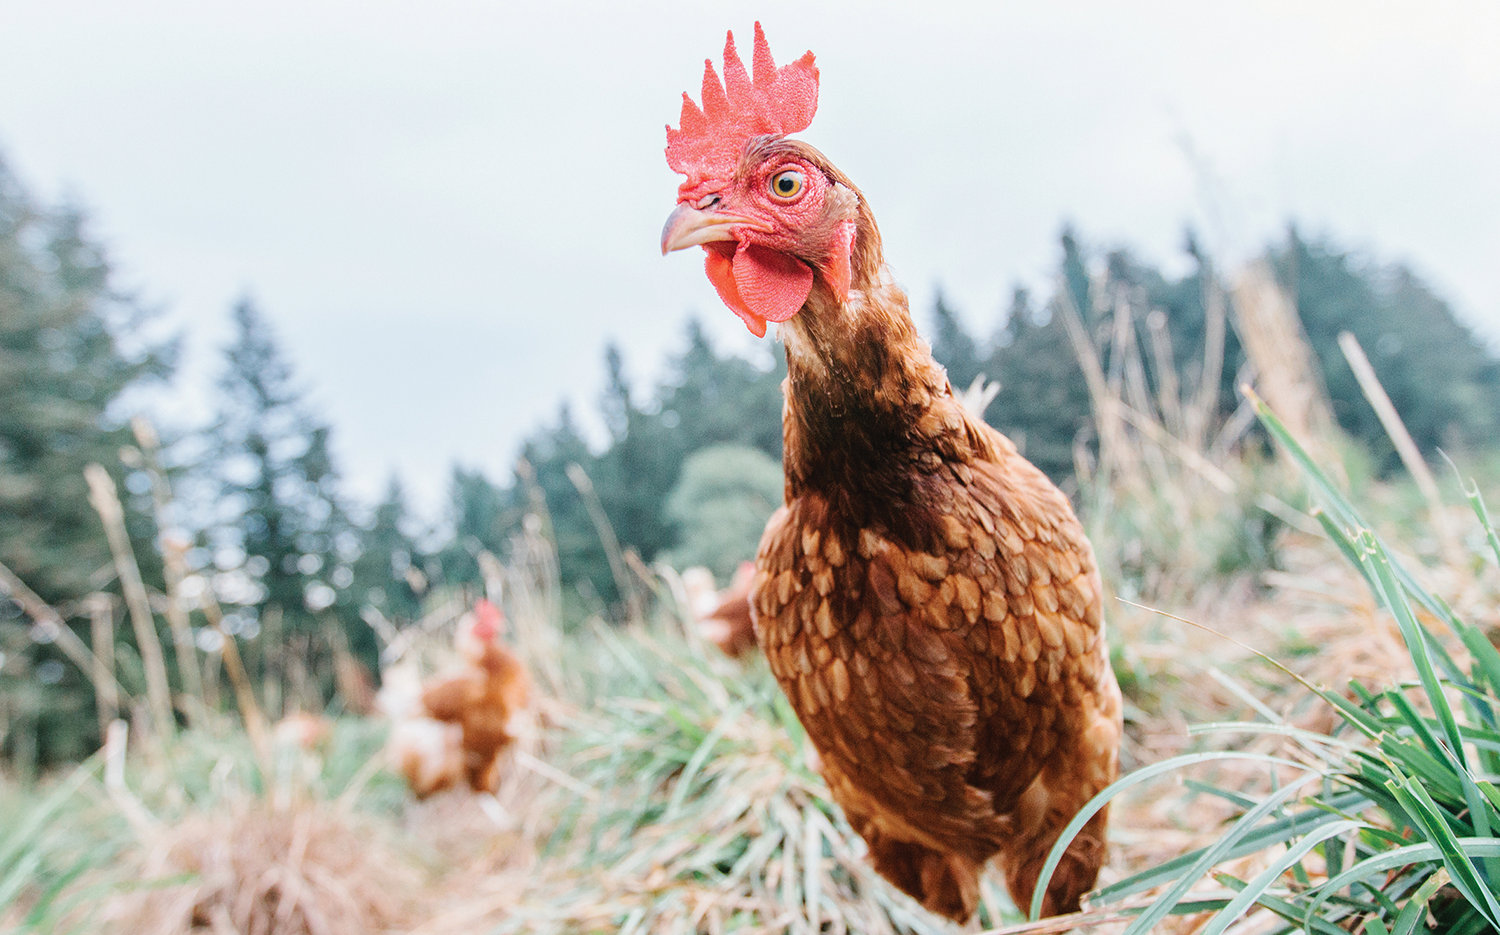 A curious free-range chicken on a small-scale organic farm.